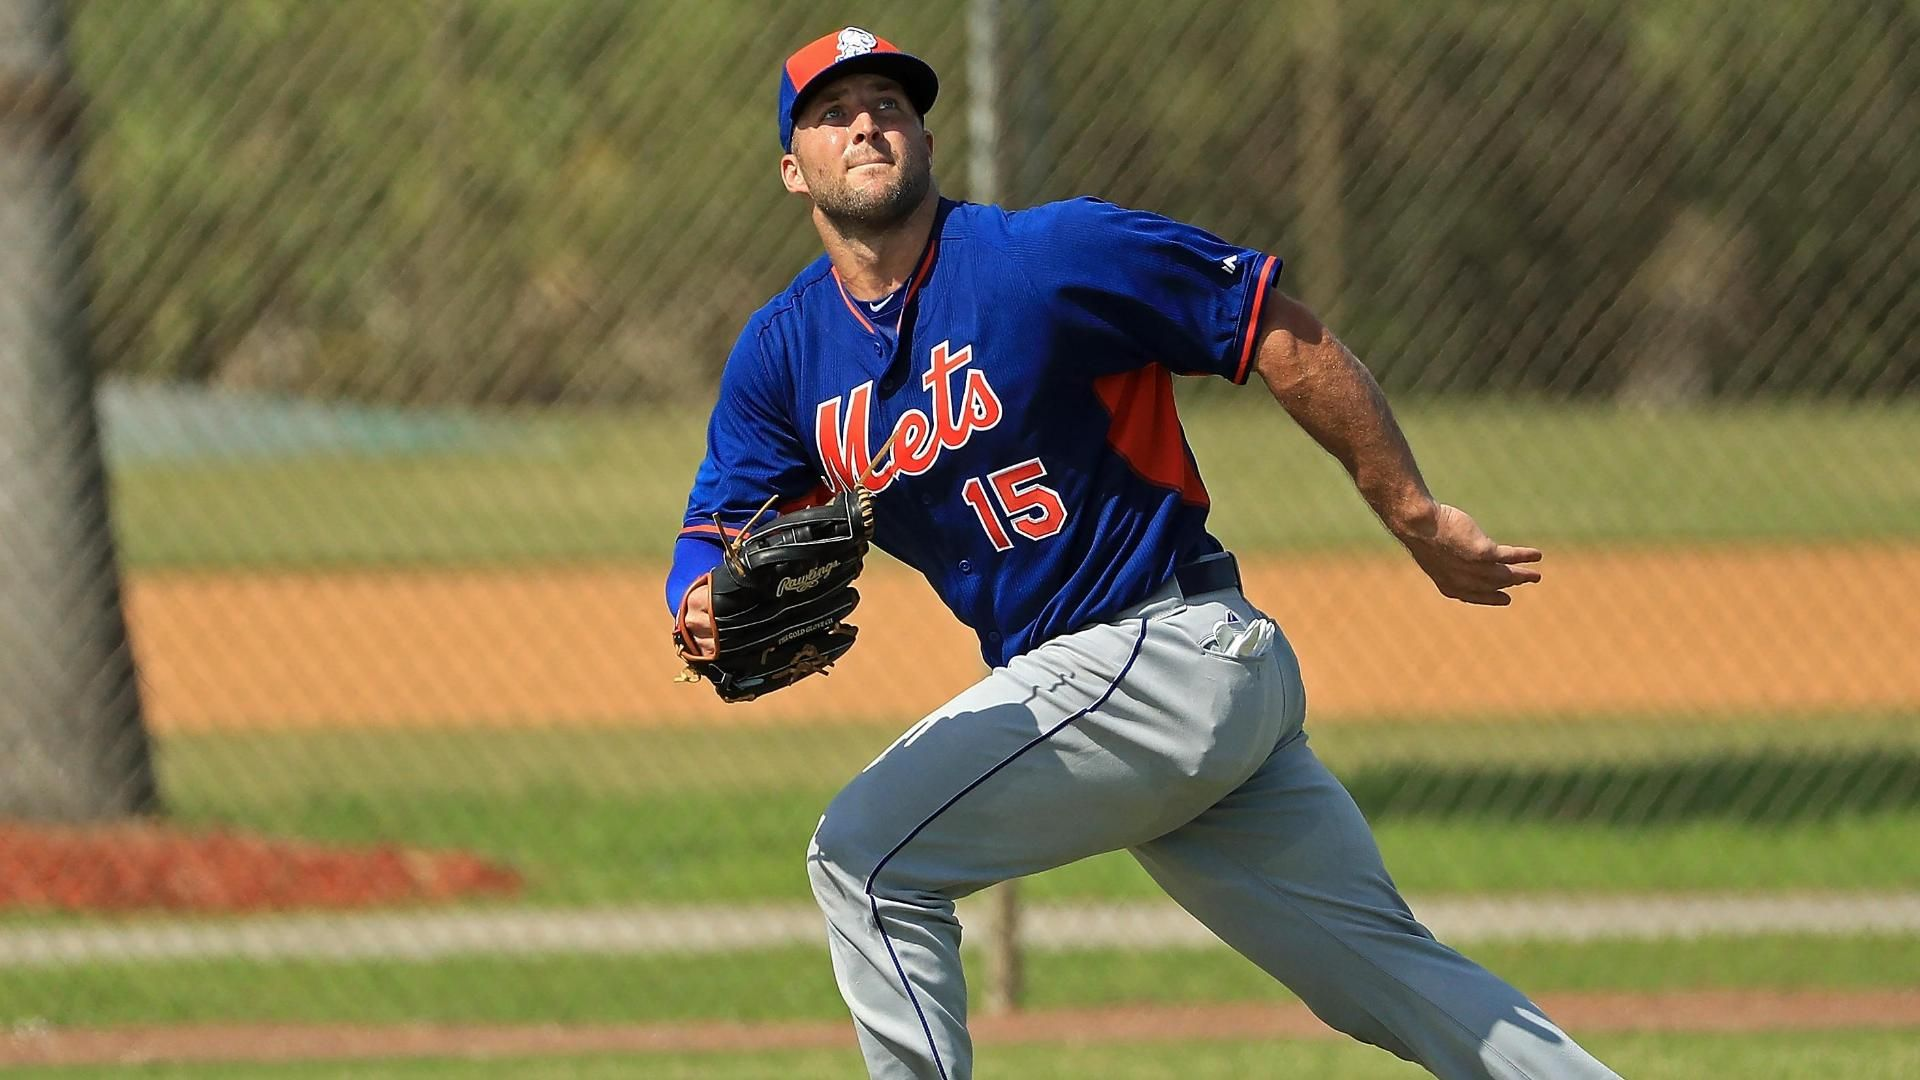 Get your first look at Tim Tebow in a Mets uniform